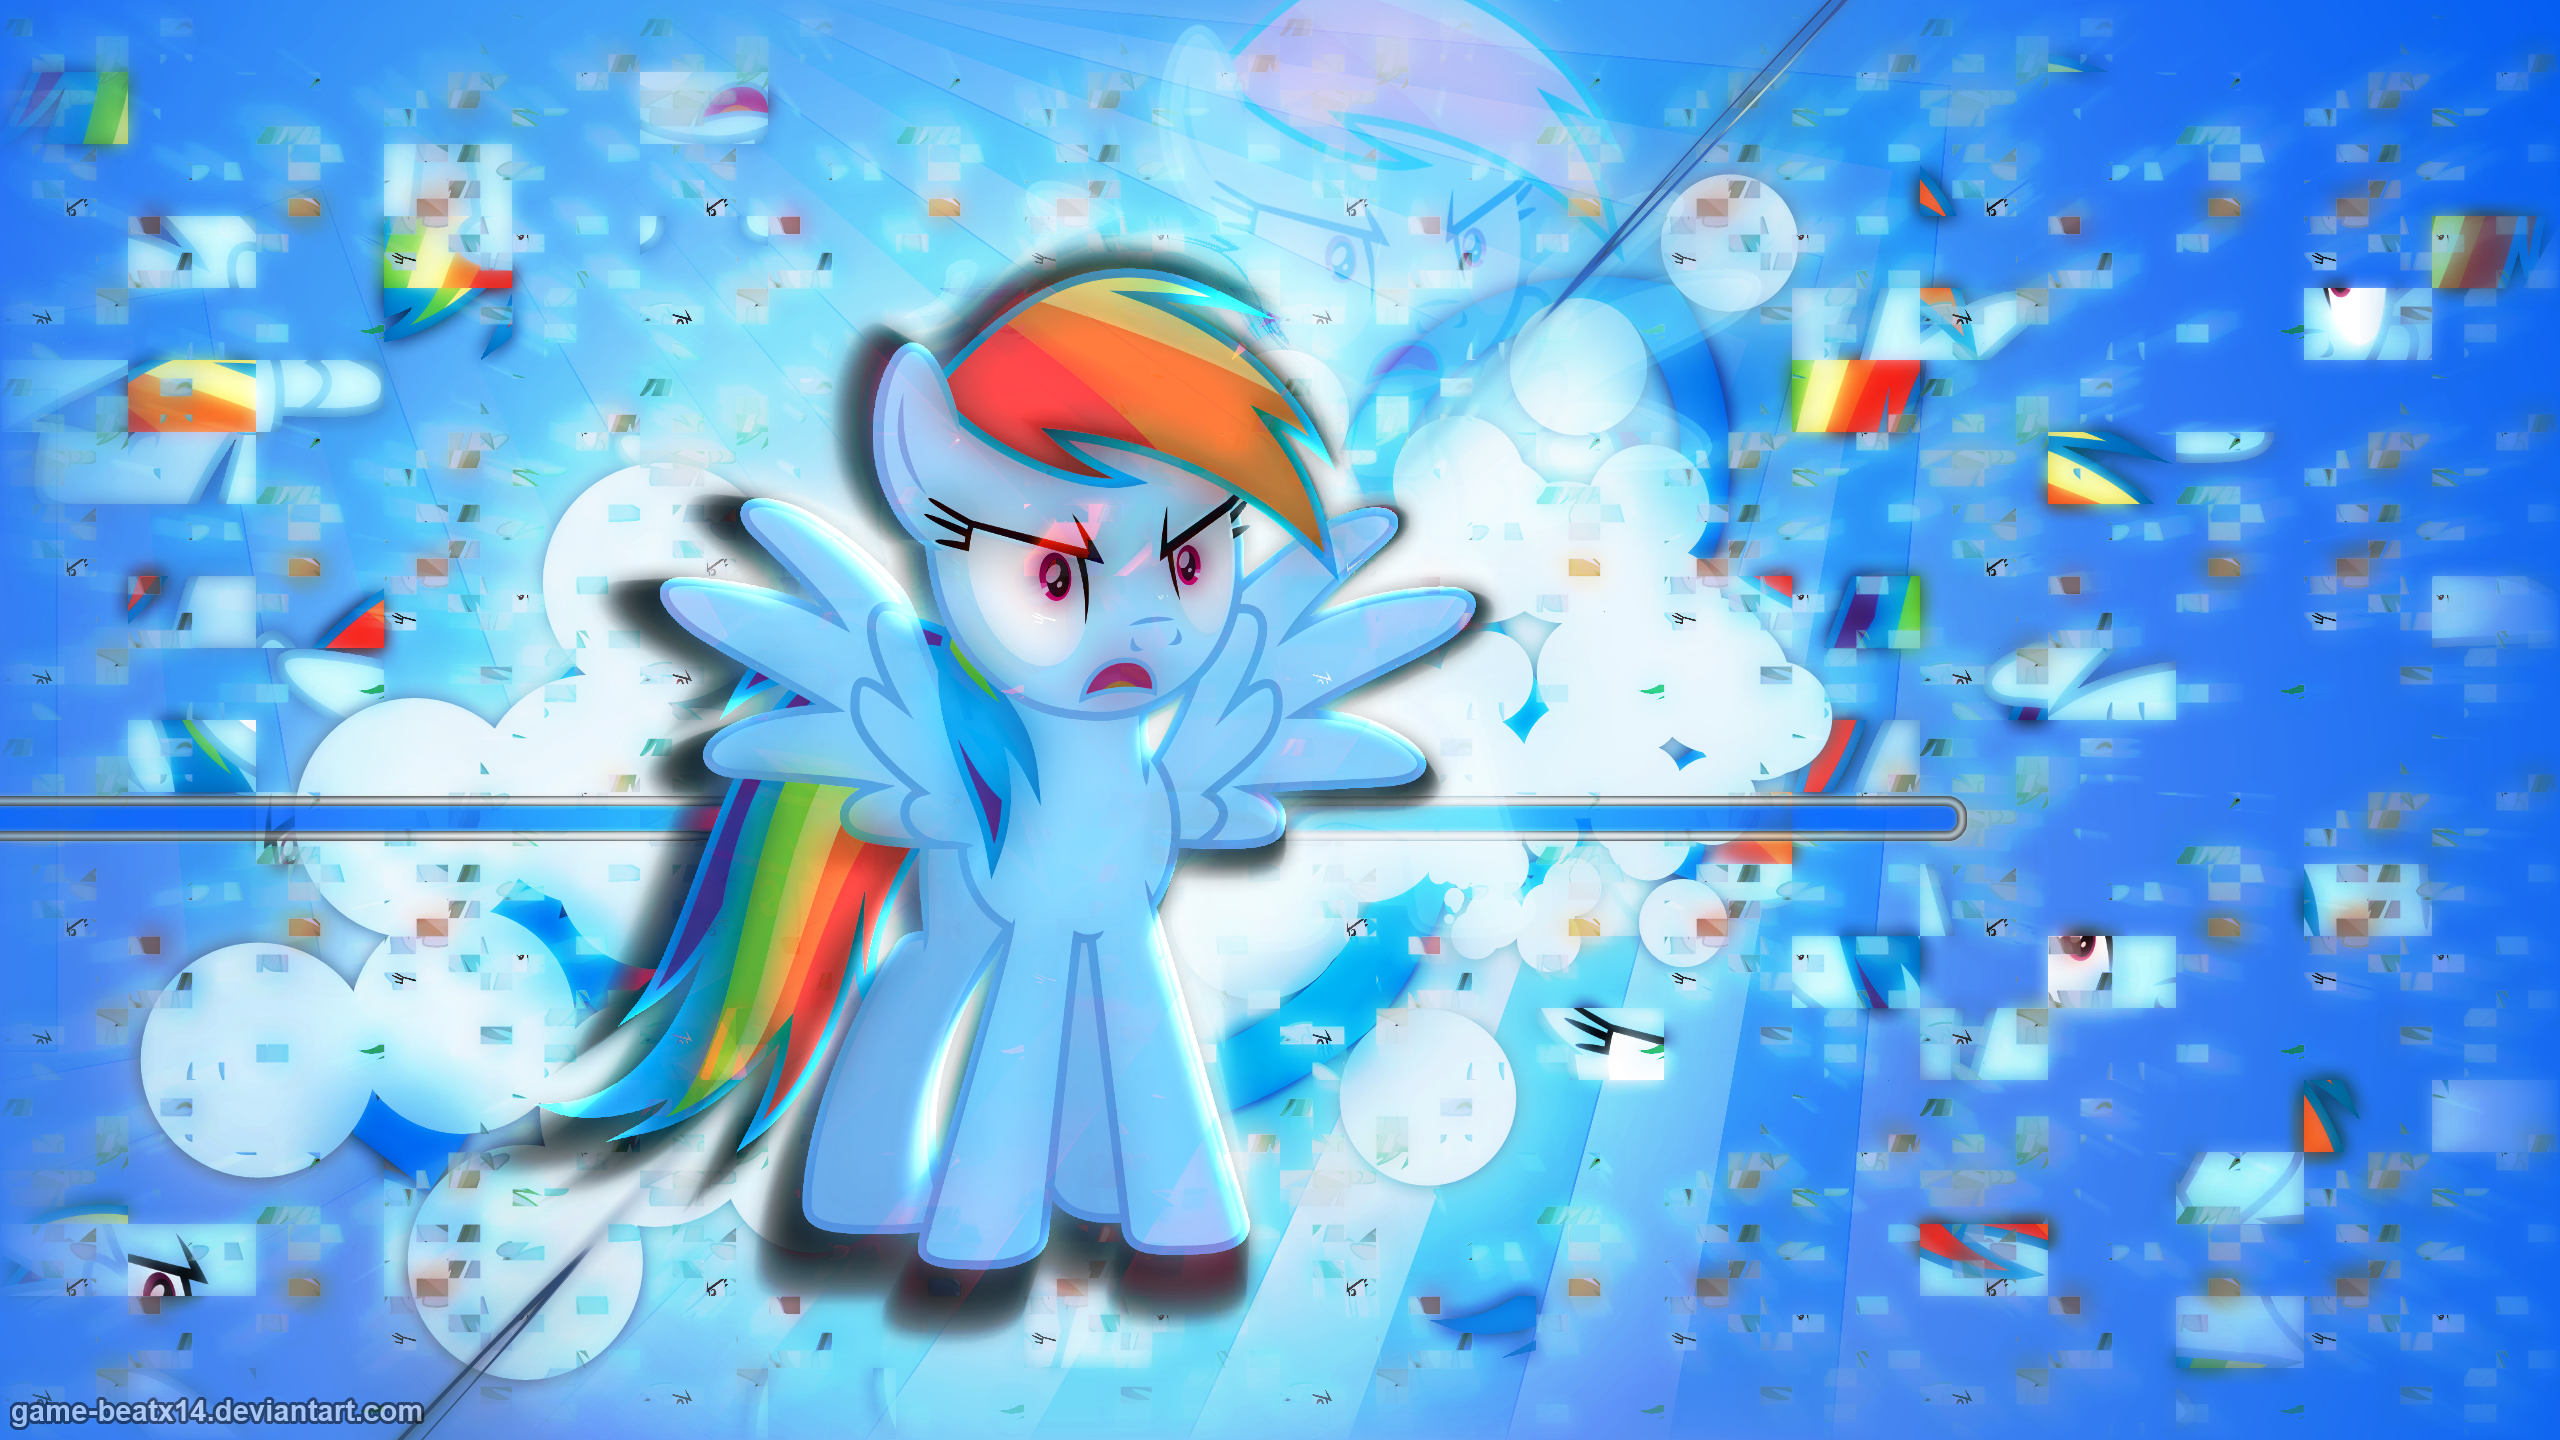 Angry Dash by DoktorRainbowFridge and Game-BeatX14